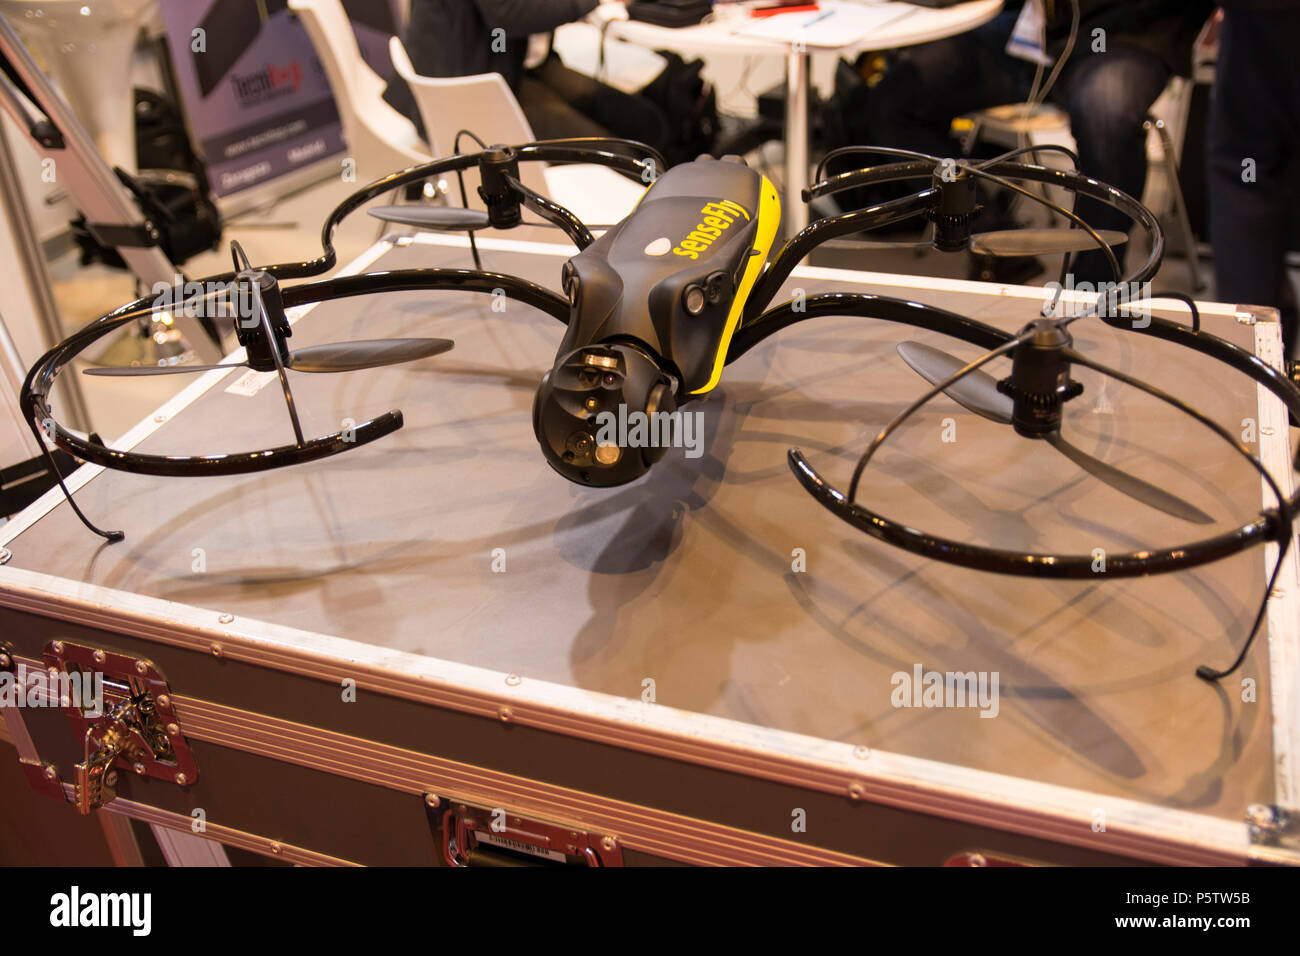 ebee drone for survillance and industrial uses from Sensefly. In GR-EX (Global Robot Expo) in Madrid 2018. - Stock Image